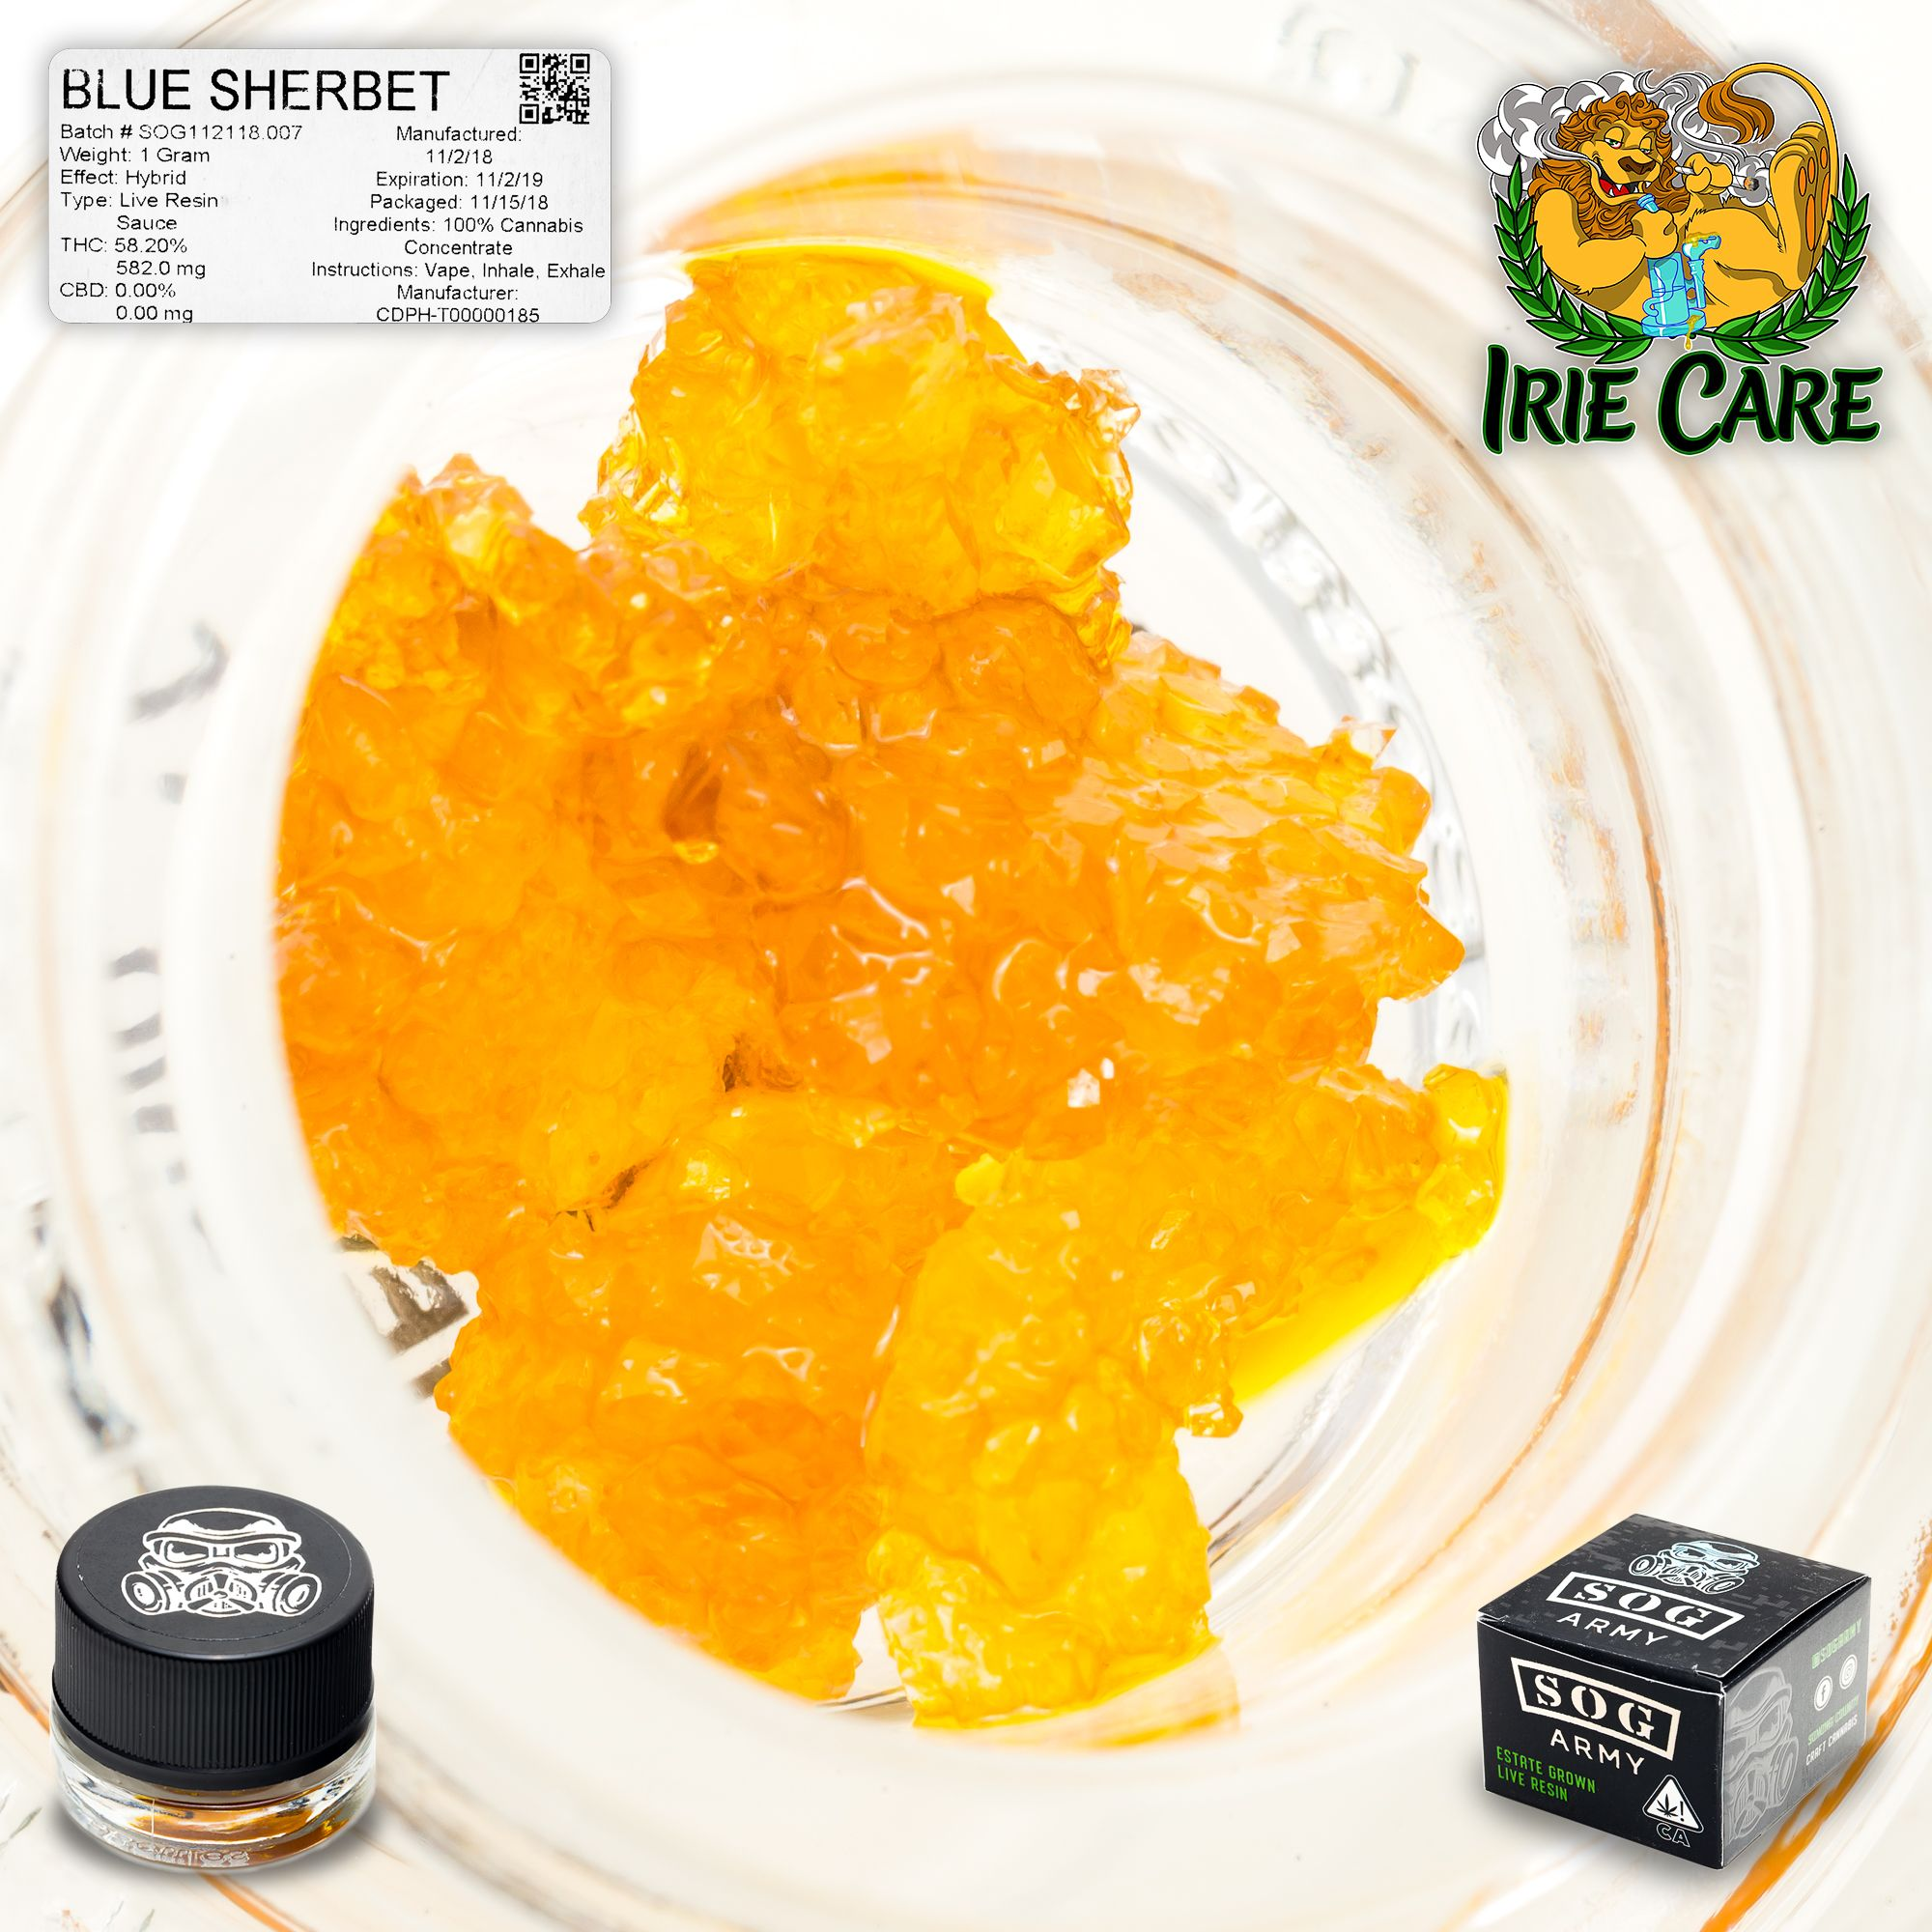 SOG Army - Blue Sherbet *Live Resin Sauce*